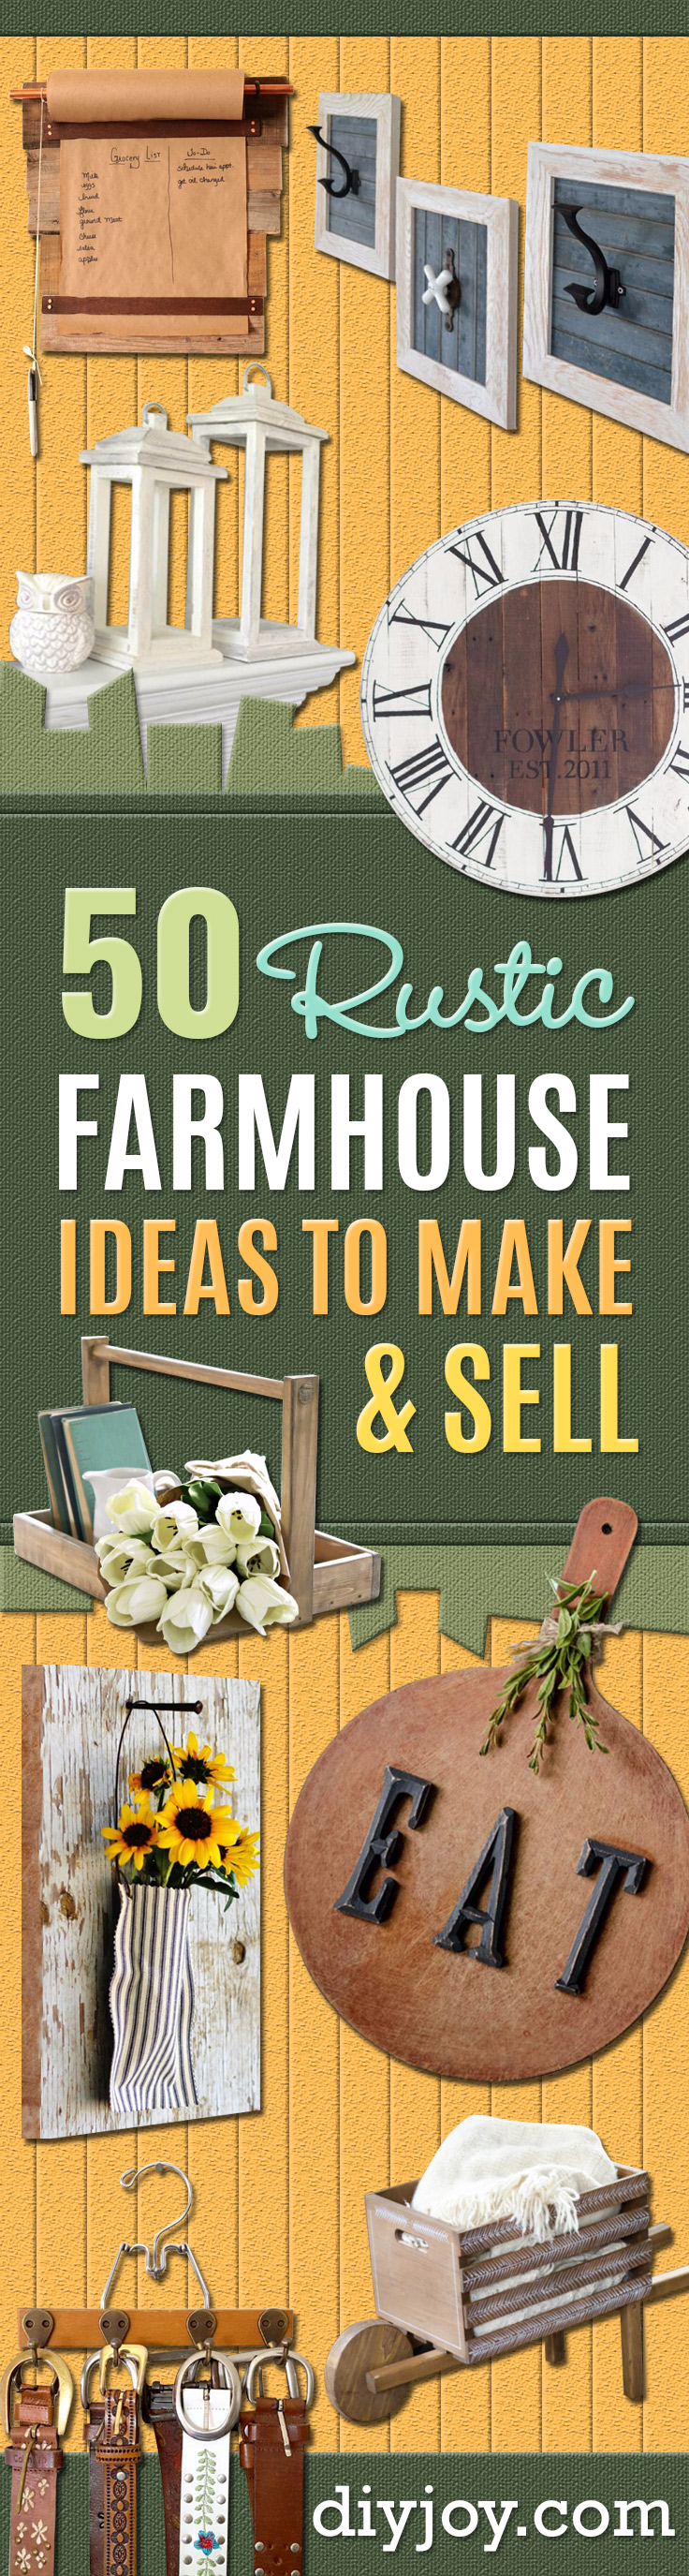 Farmhouse Decor to Make And Sell - Easy DIY Home Decor and Rustic Craft Ideas - Step by Step Country Crafts, Farmhouse Decor To Make and Sell on Etsy and at Craft Fairs - Tutorials and Instructions for Creative Ways to Make Money - Best Vintage Farmhouse DIY For Living Room, Bedroom, Walls and Gifts http://diyjoy.com/farmhouse-decor-to-make-and-sell